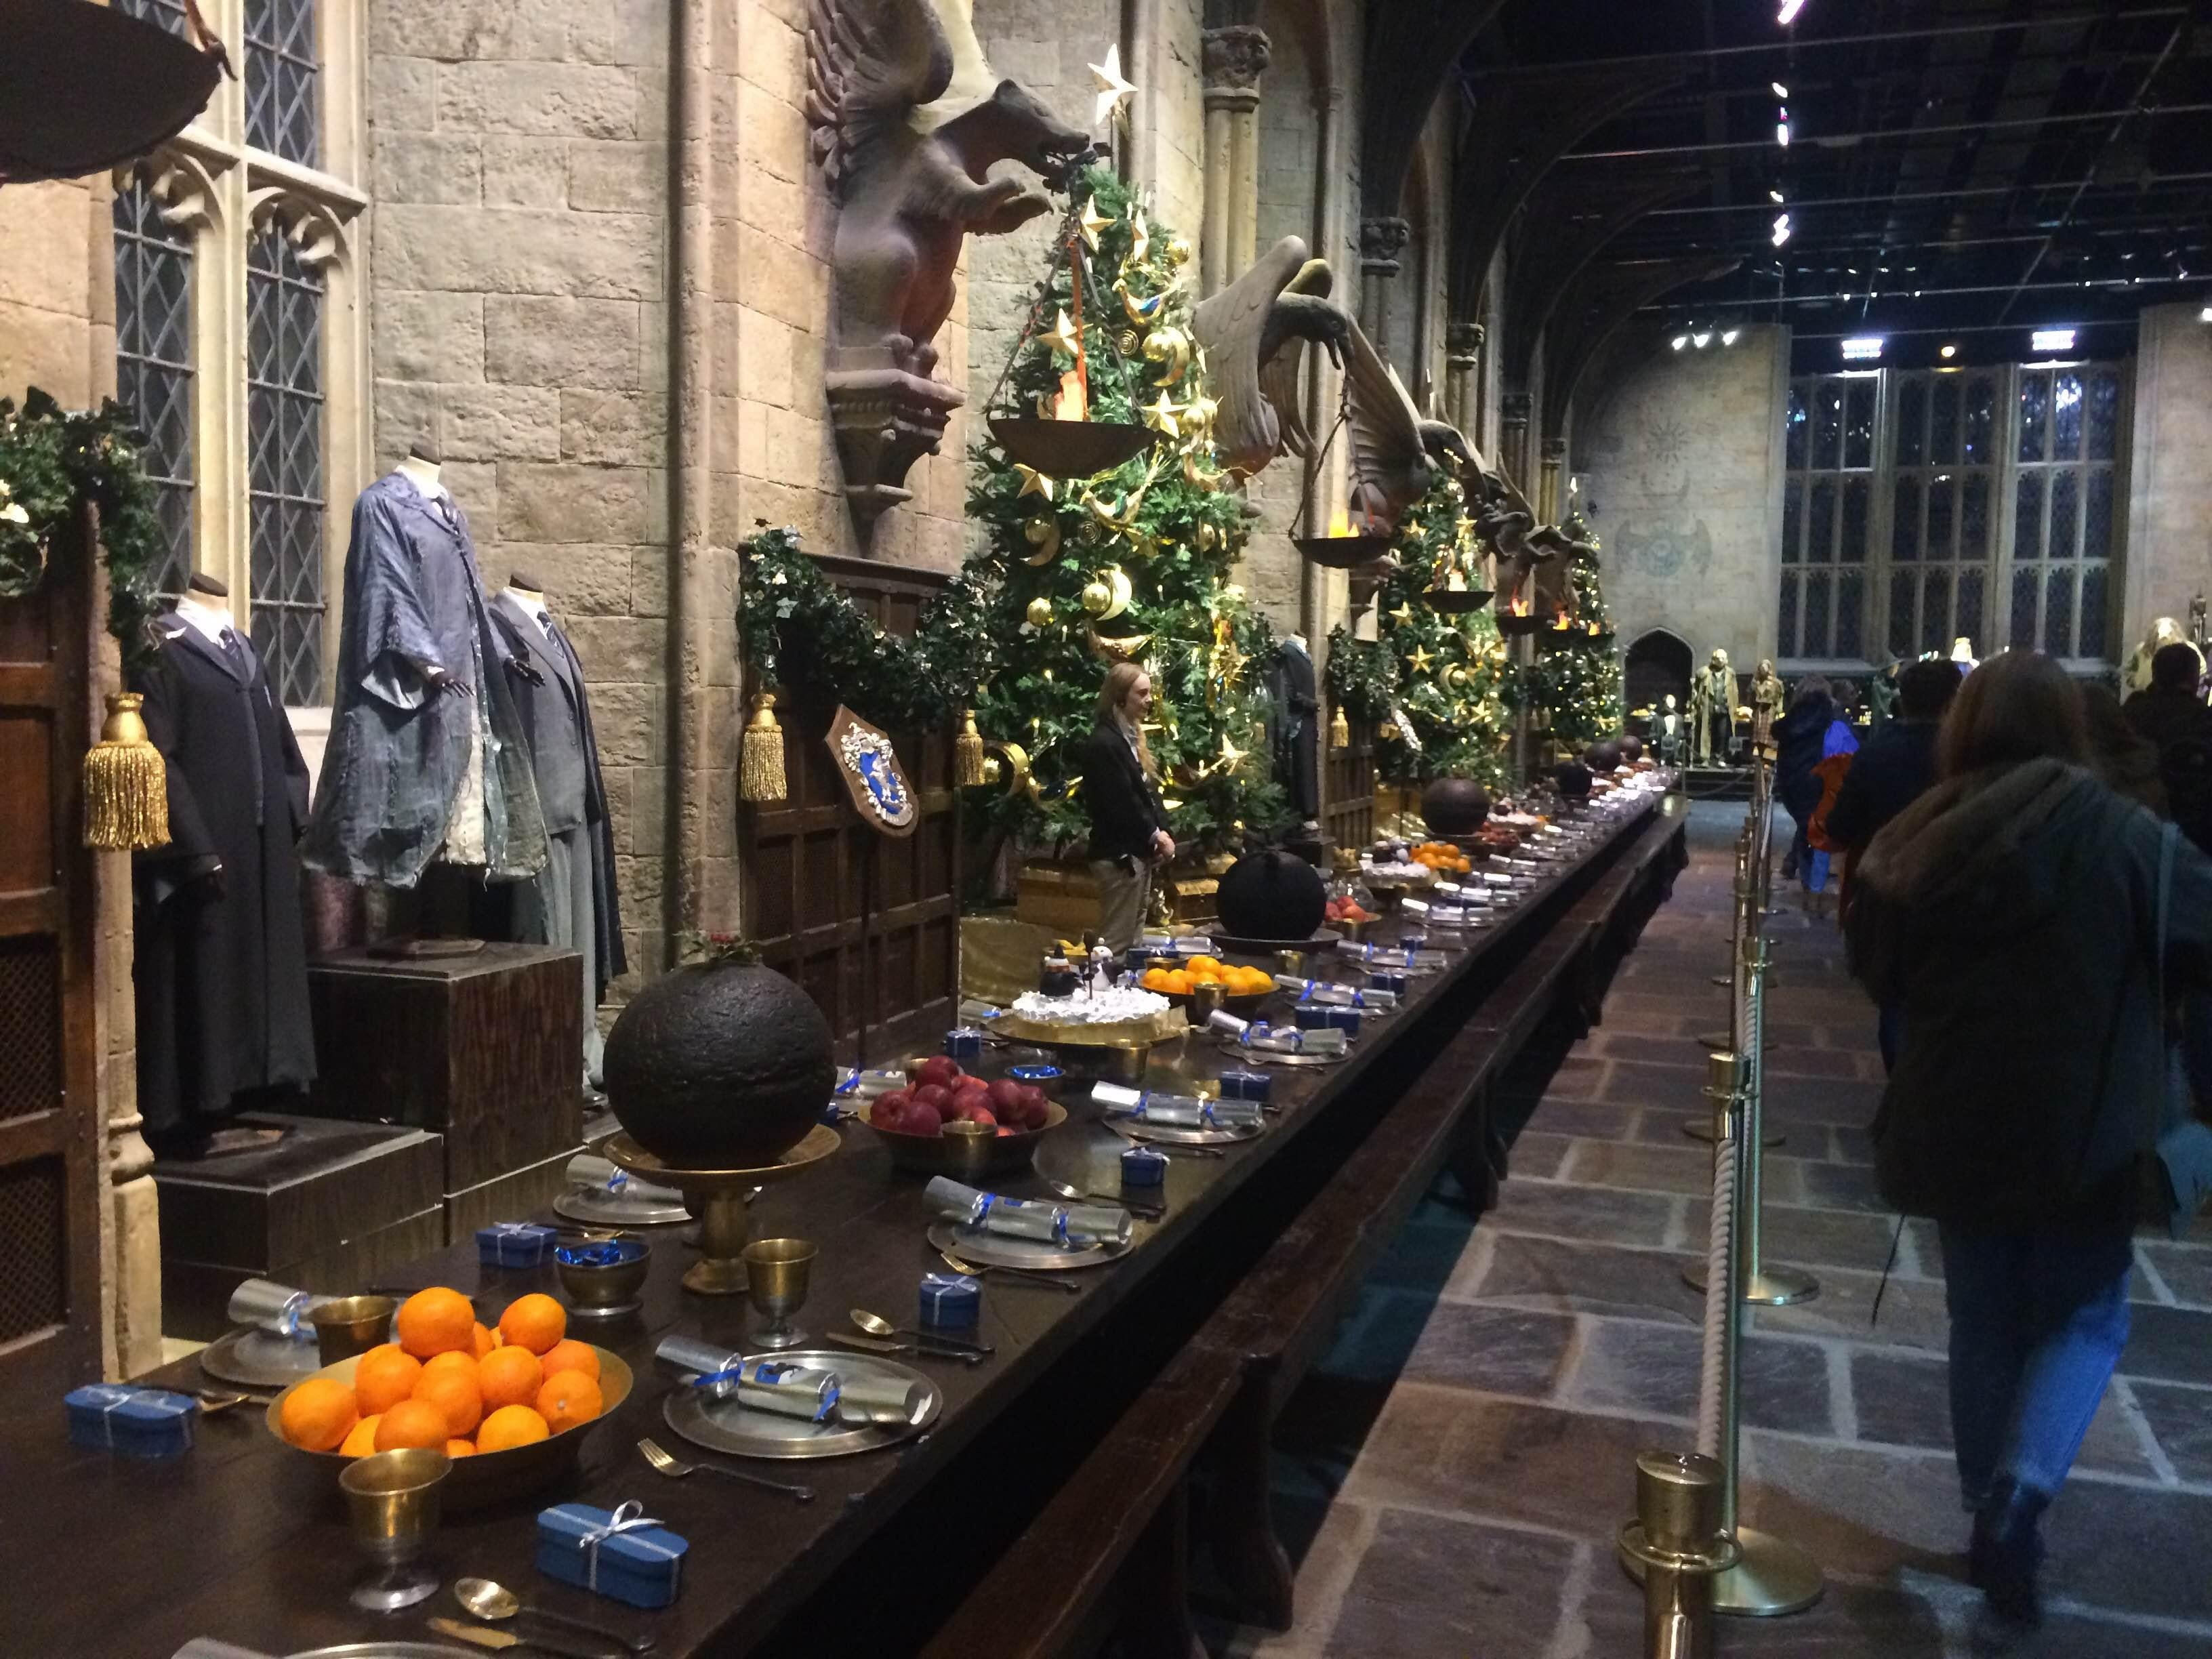 Canal en The Making of Harry Potter